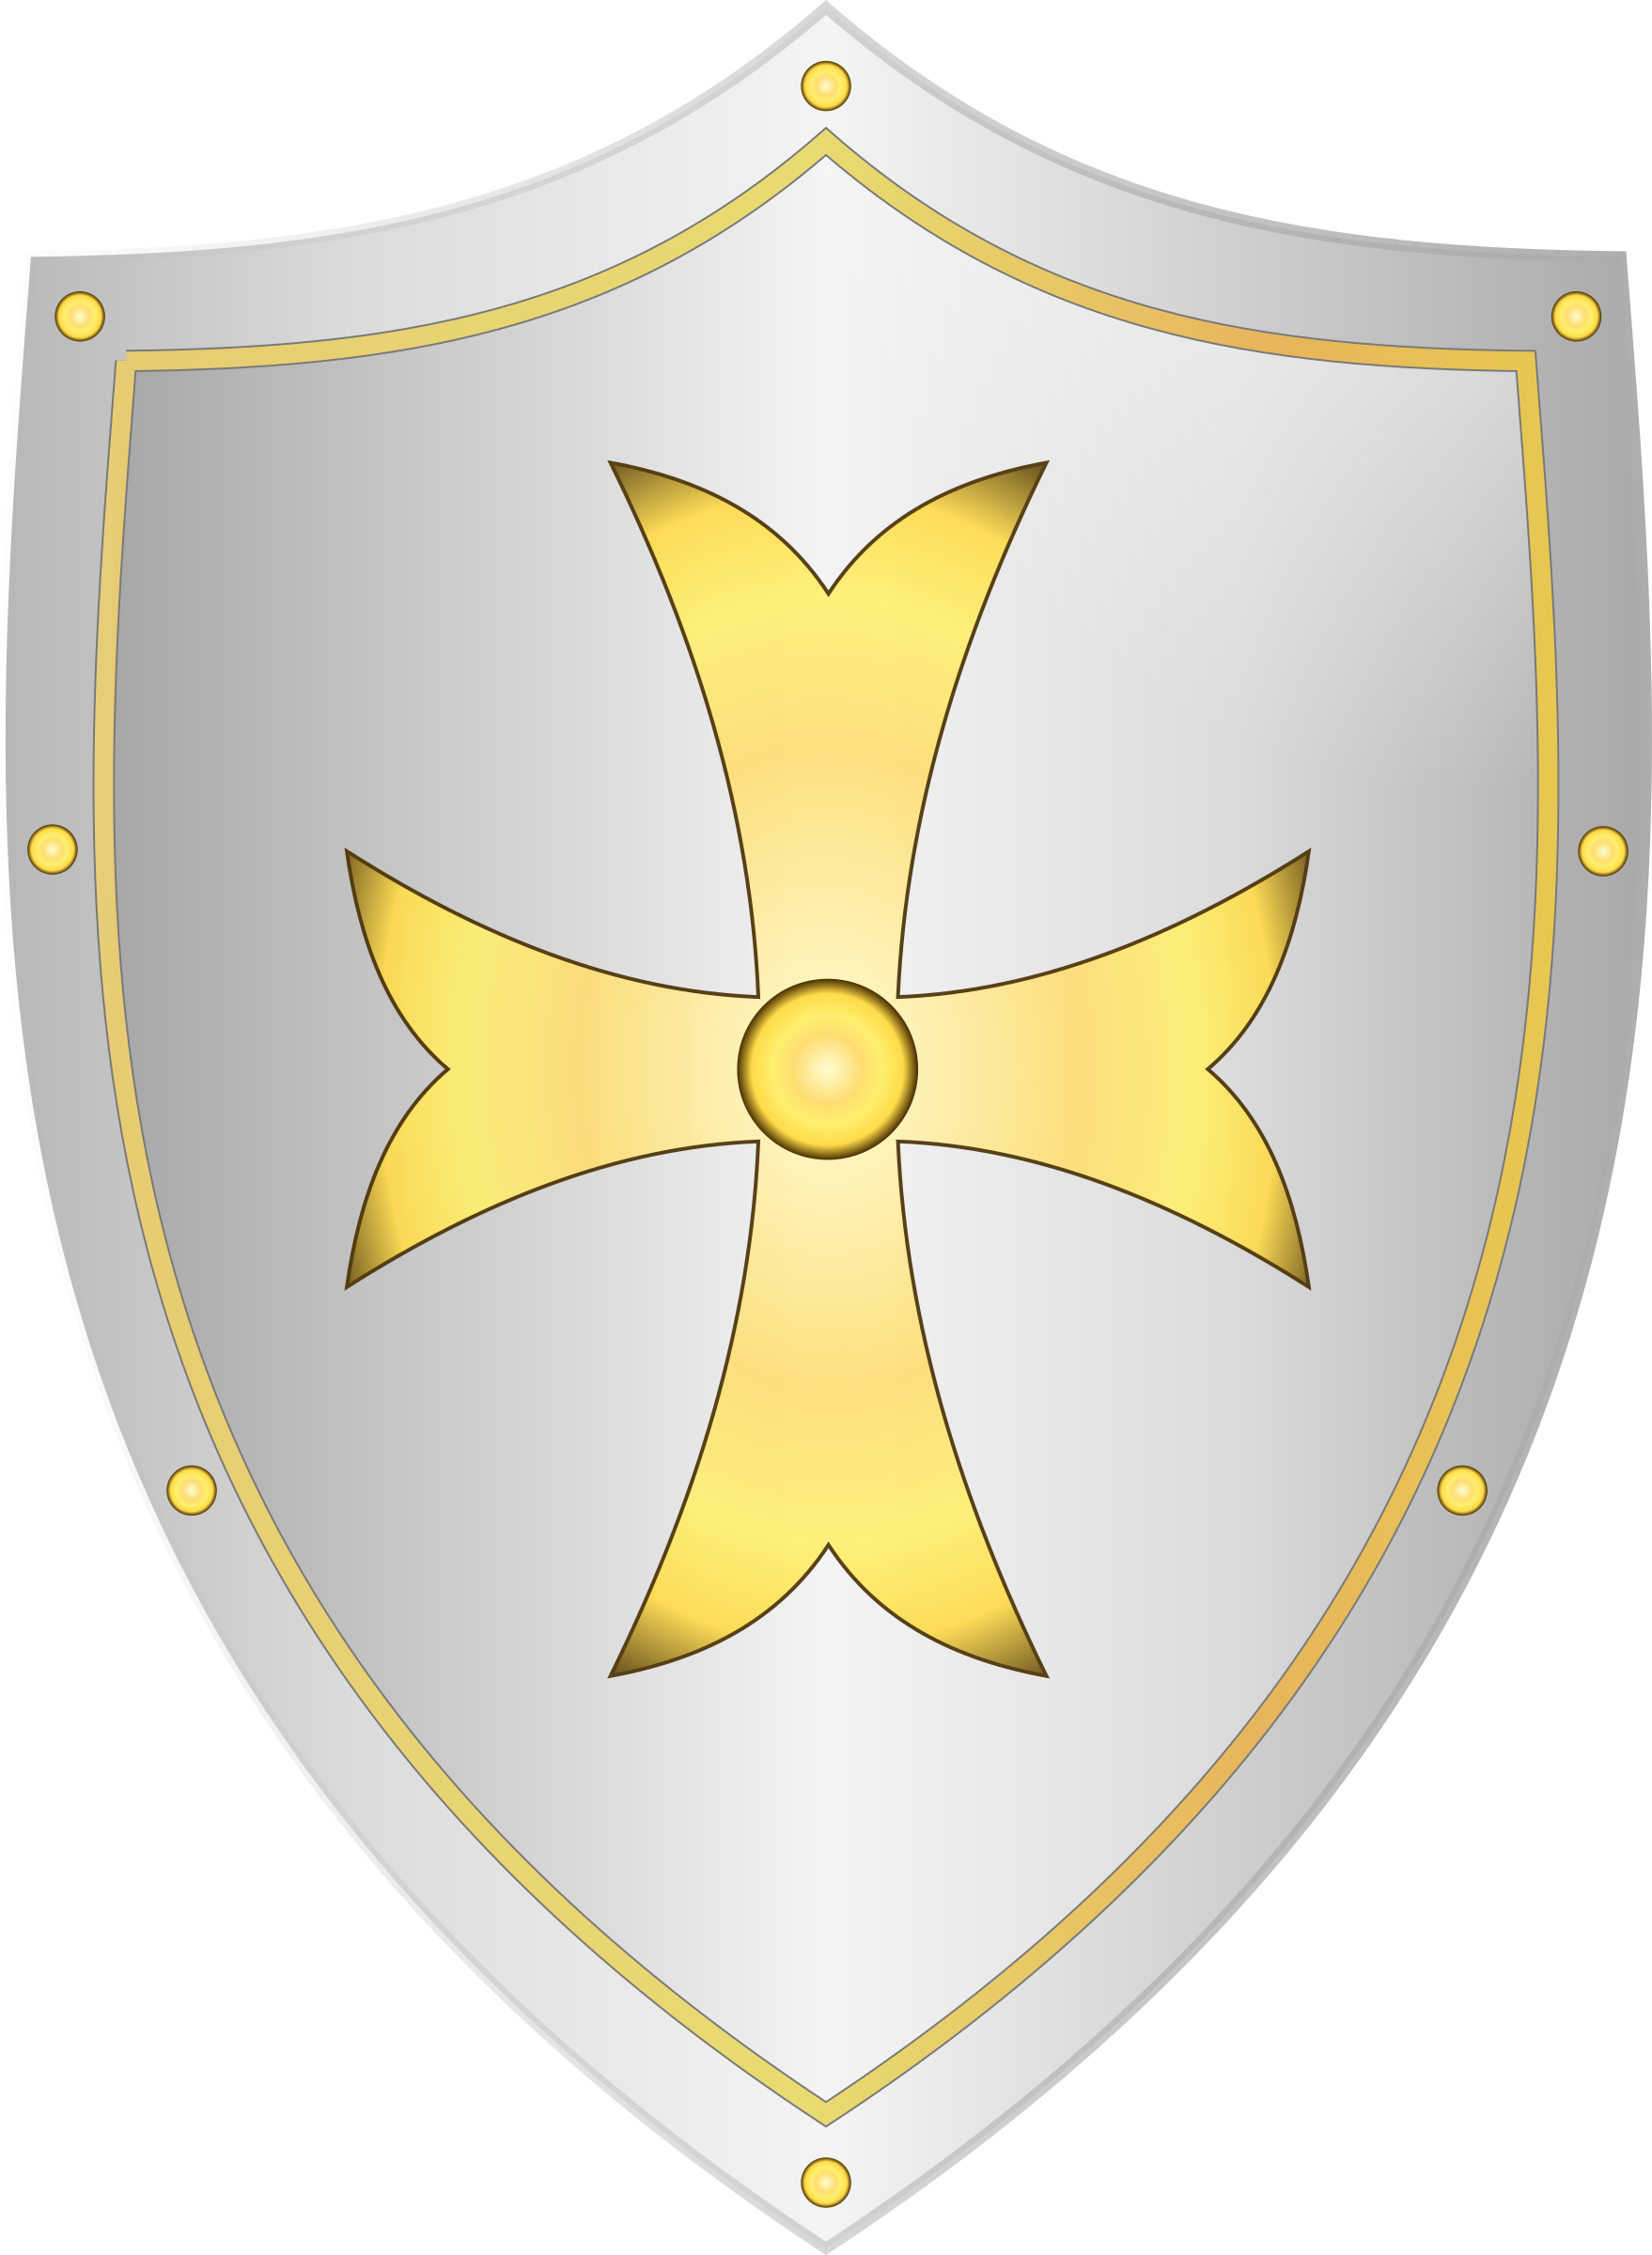 Classic big image png. Clipart shield medieval shield